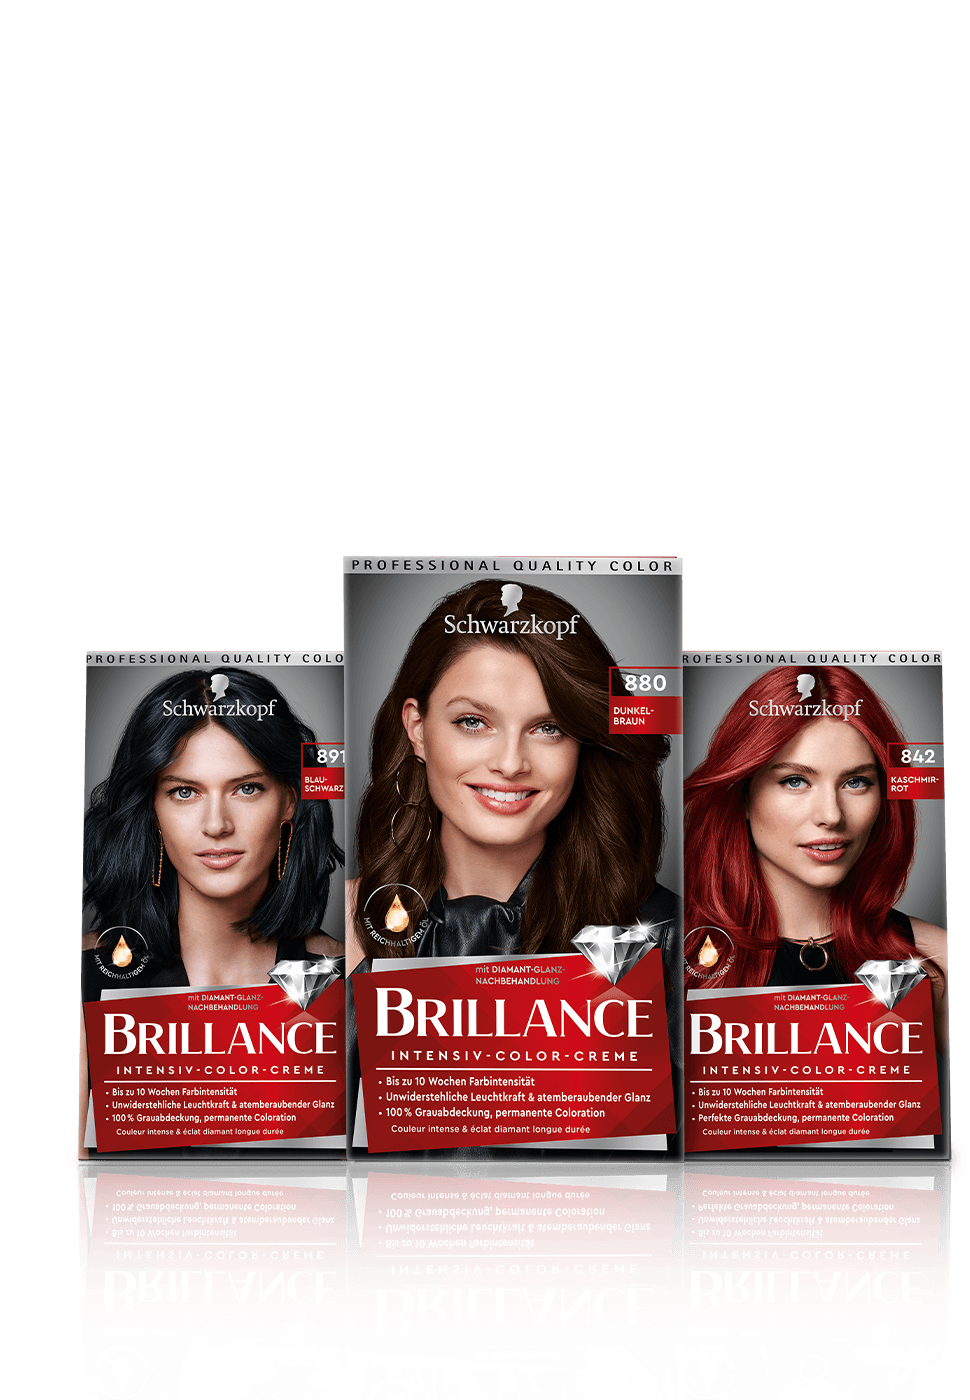 brillance_de_pack_overlay_970x140_1